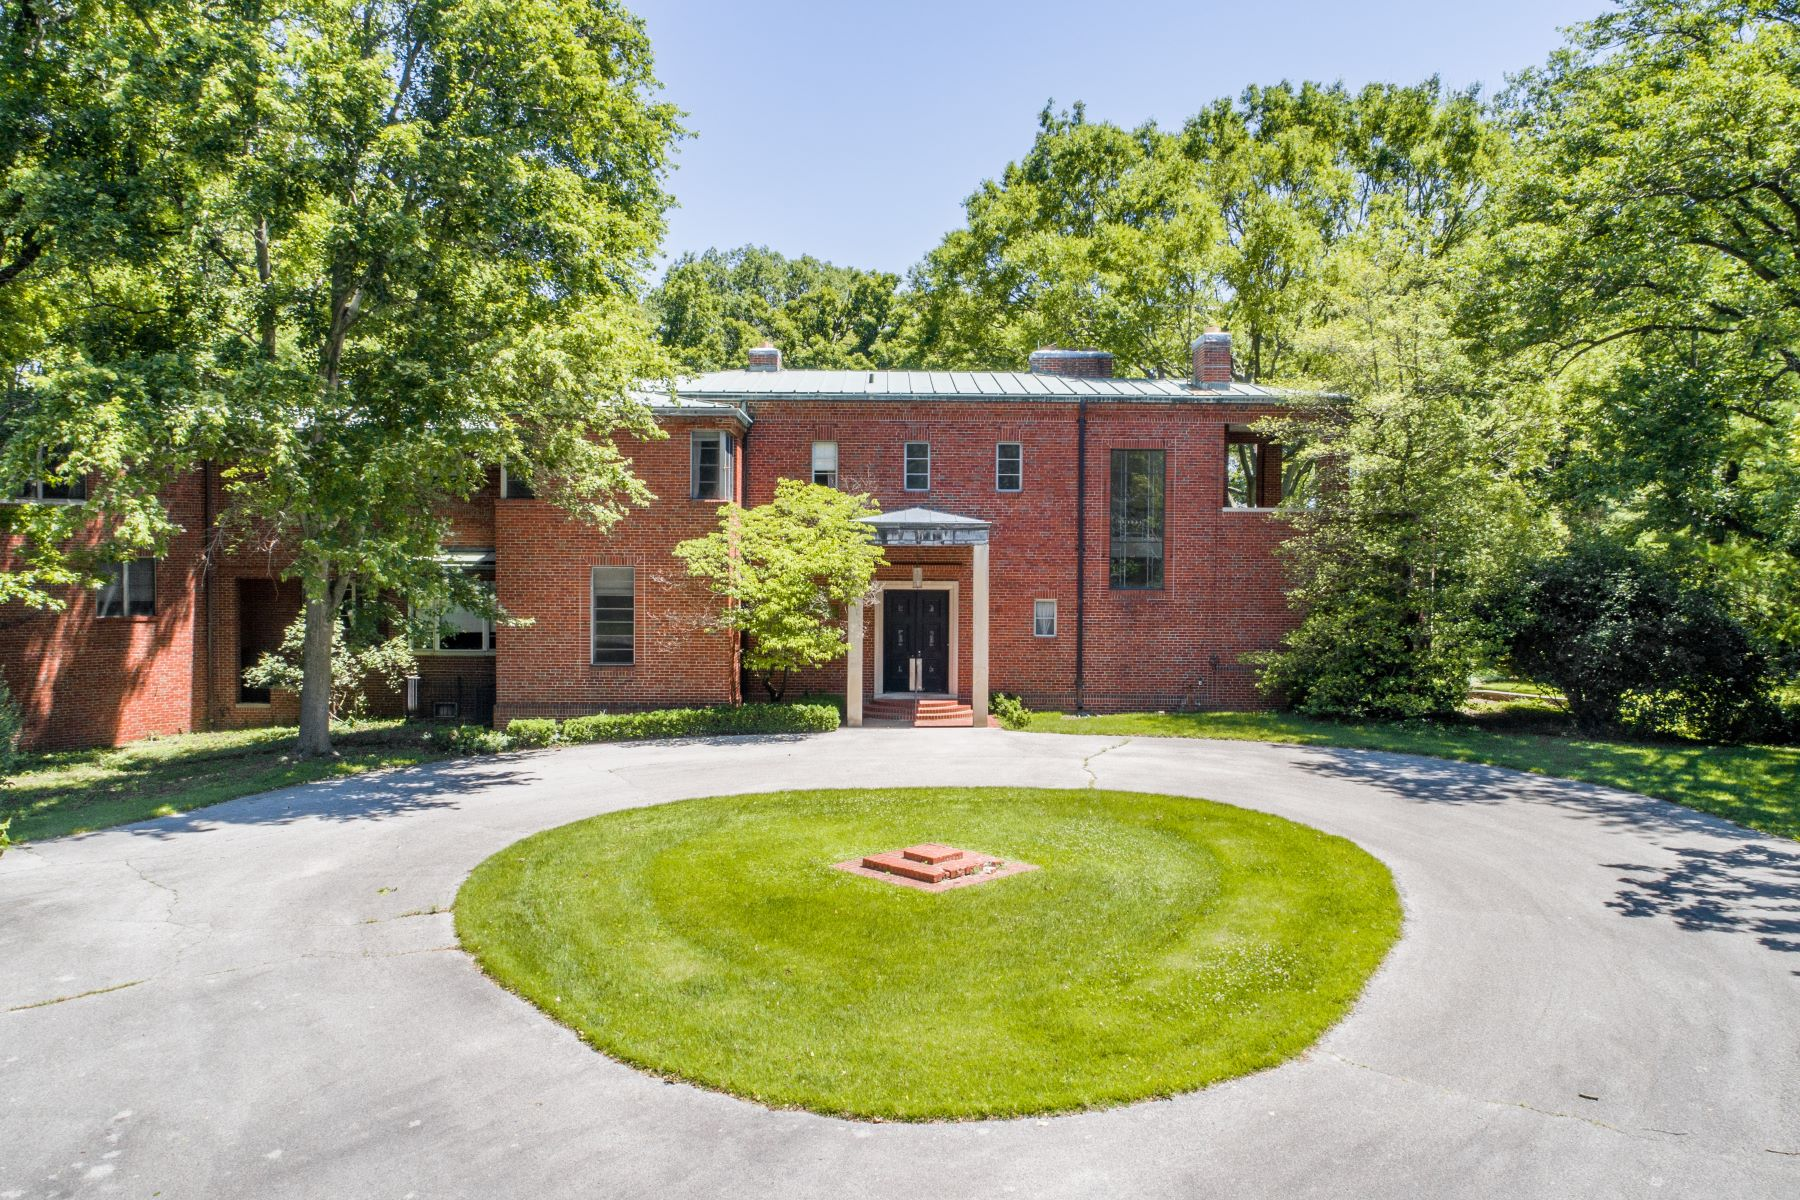 Single Family Homes for Sale at Huntleigh Estate Designed by Charles Eames 4 Deacon Drive Huntleigh, Missouri 63131 United States